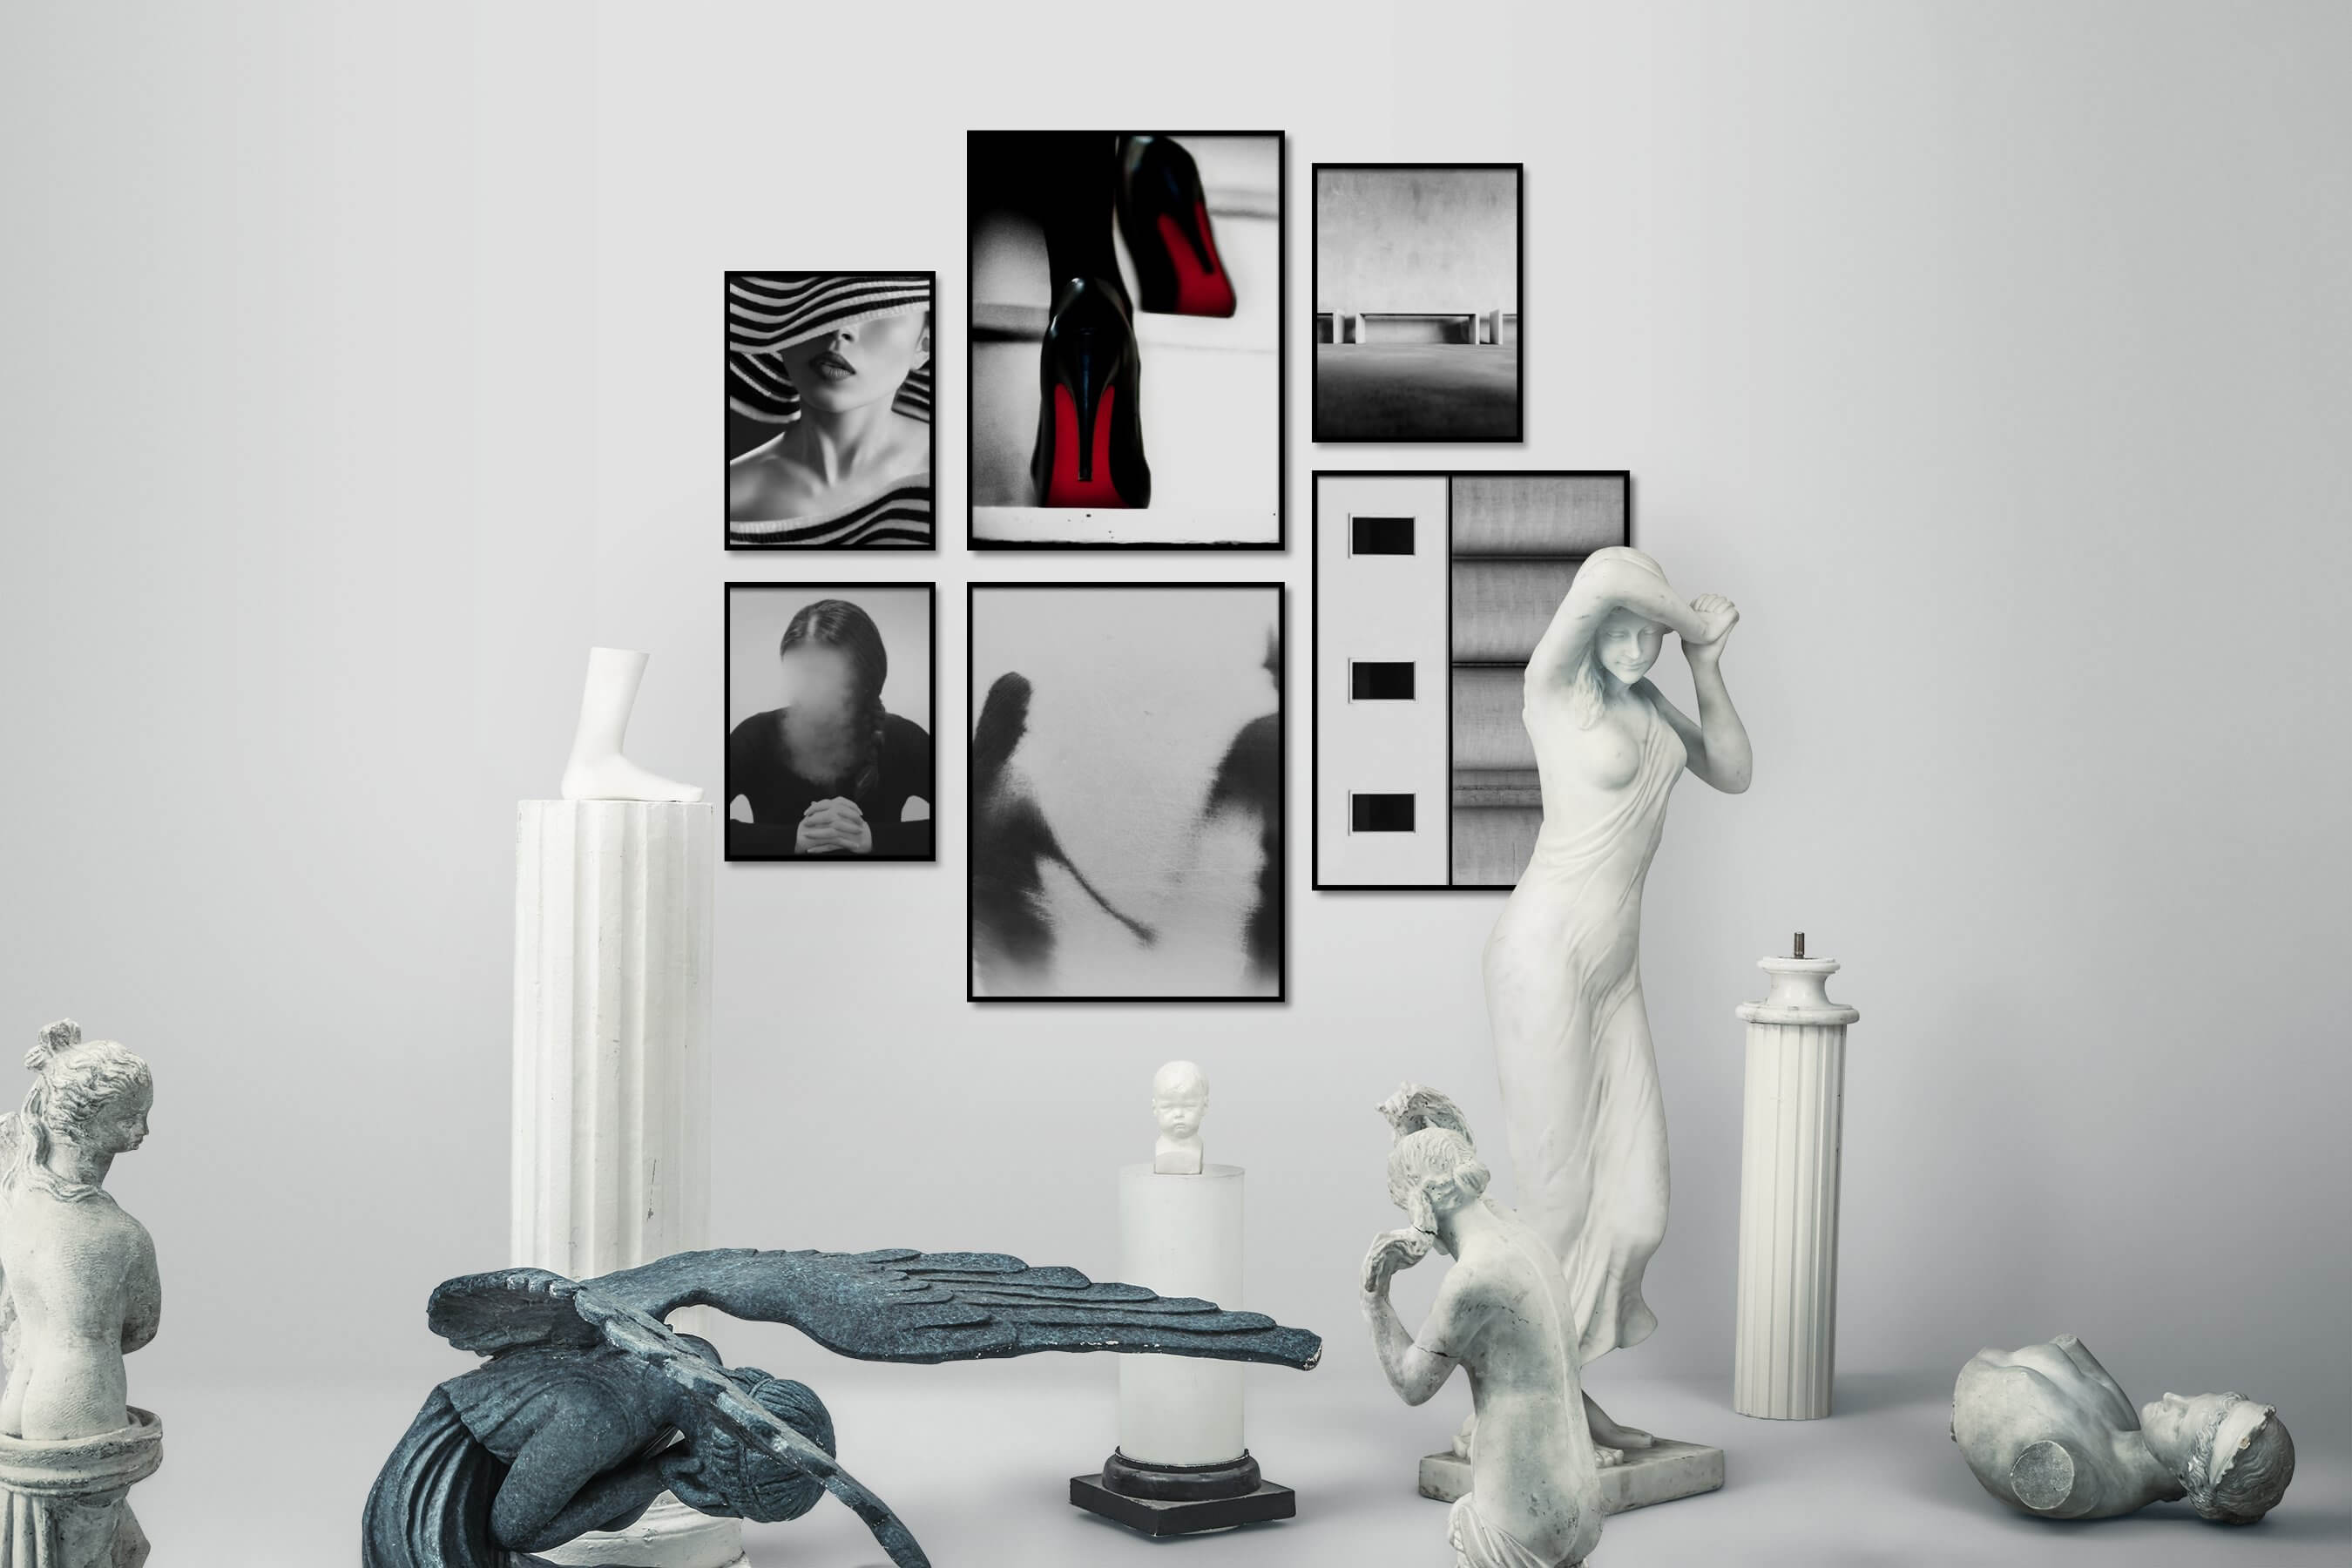 Gallery wall idea with six framed pictures arranged on a wall depicting Fashion & Beauty, Black & White, For the Moderate, Artsy, and For the Minimalist